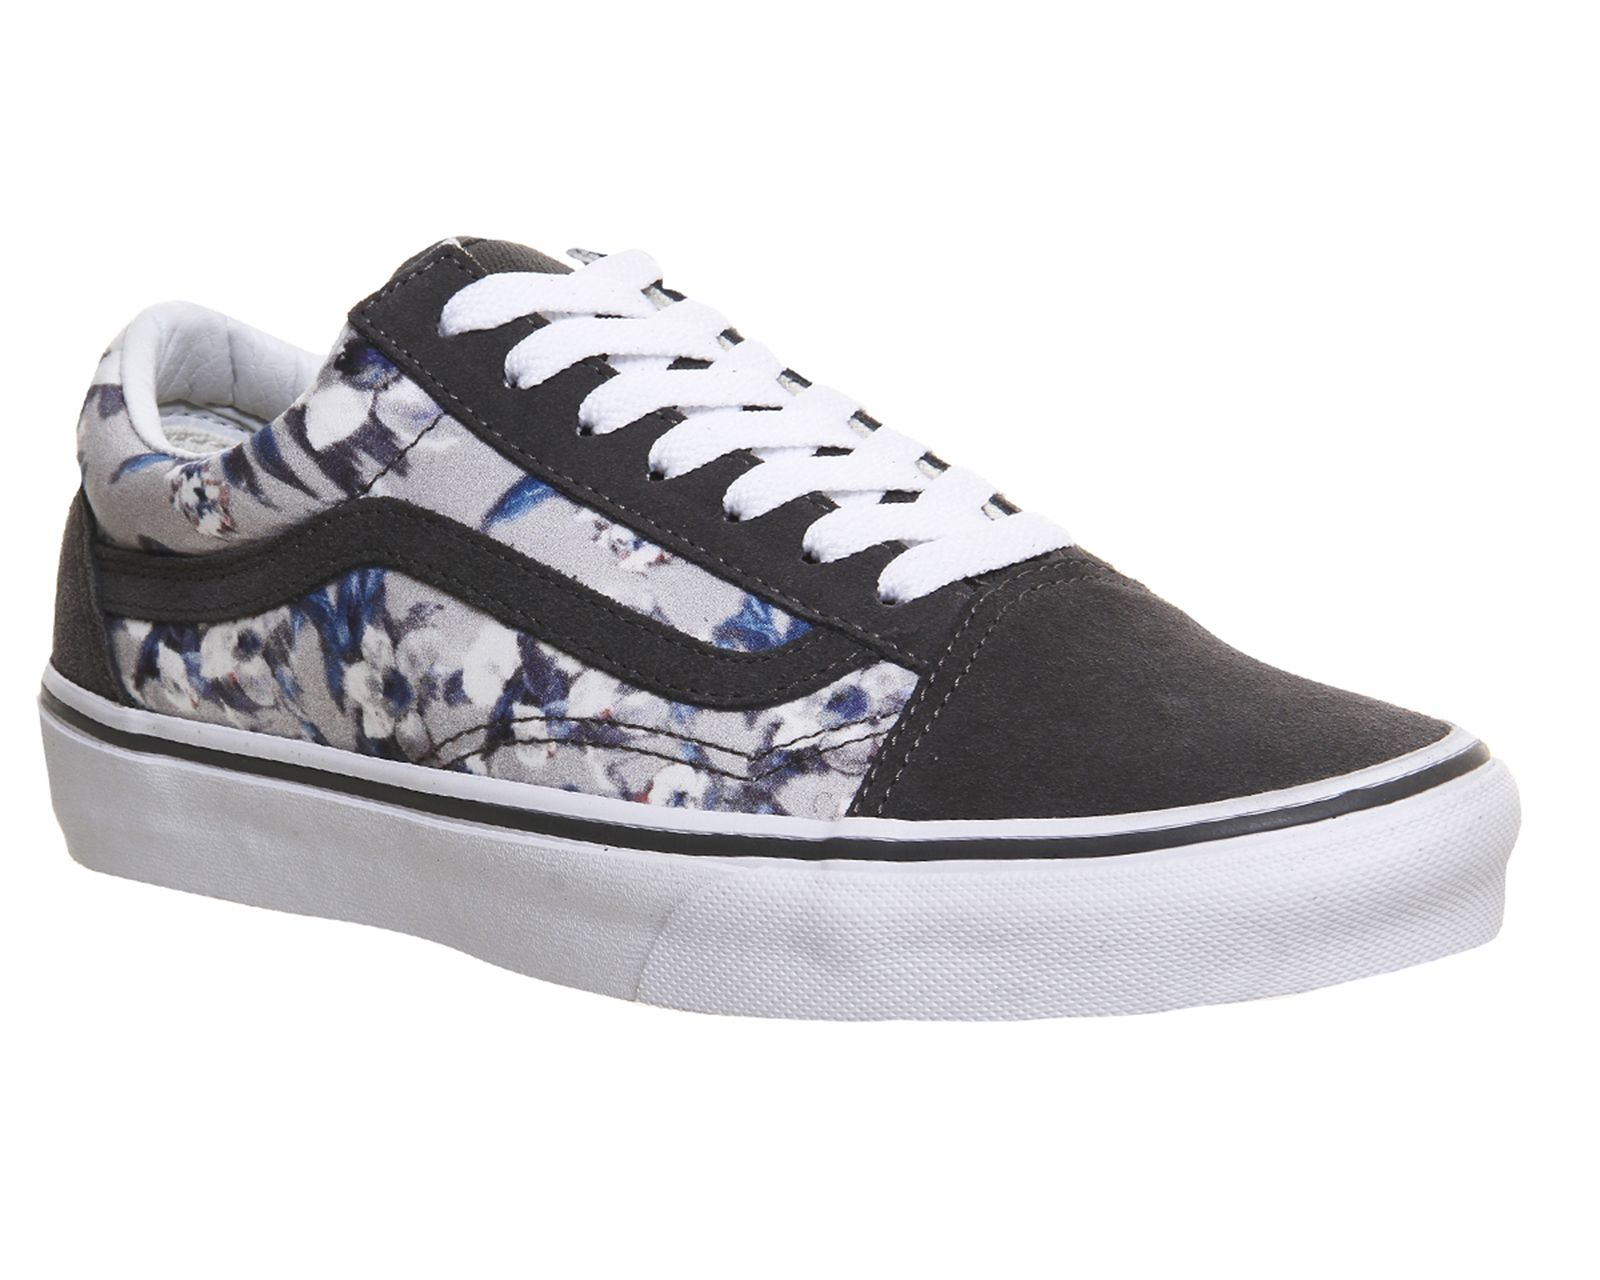 Buy Pewter White Blurred Floral Vans Old Skool from OFFICE.co.uk ... 6e2b112b99